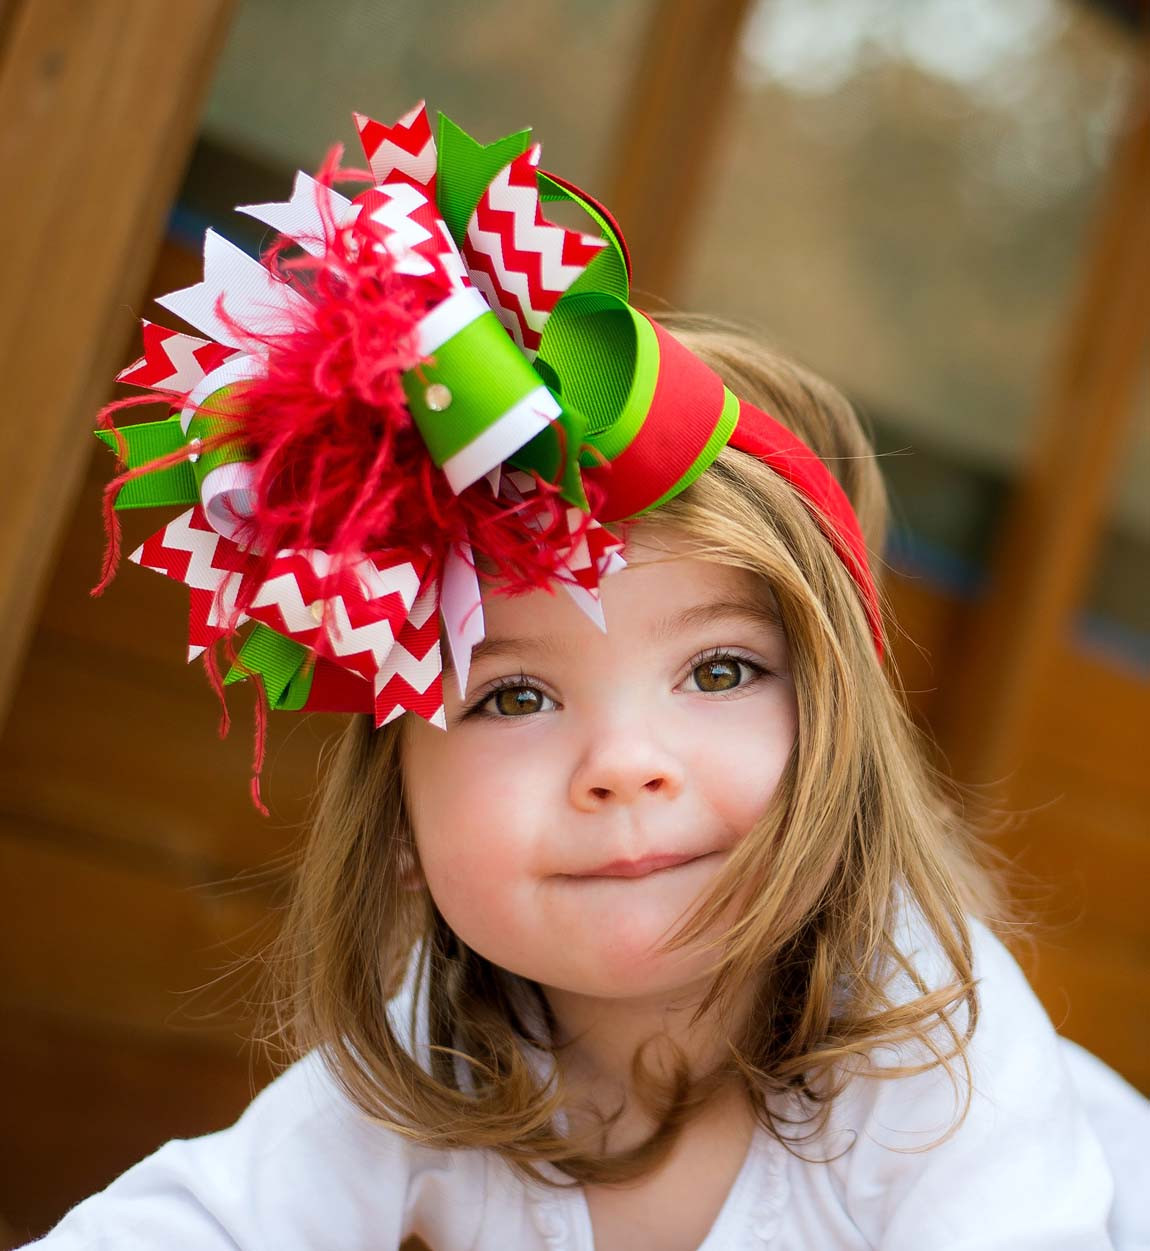 Cute Christmas Hairstyles  New Year Hairstyles party hairstyles Eve 2016 2017